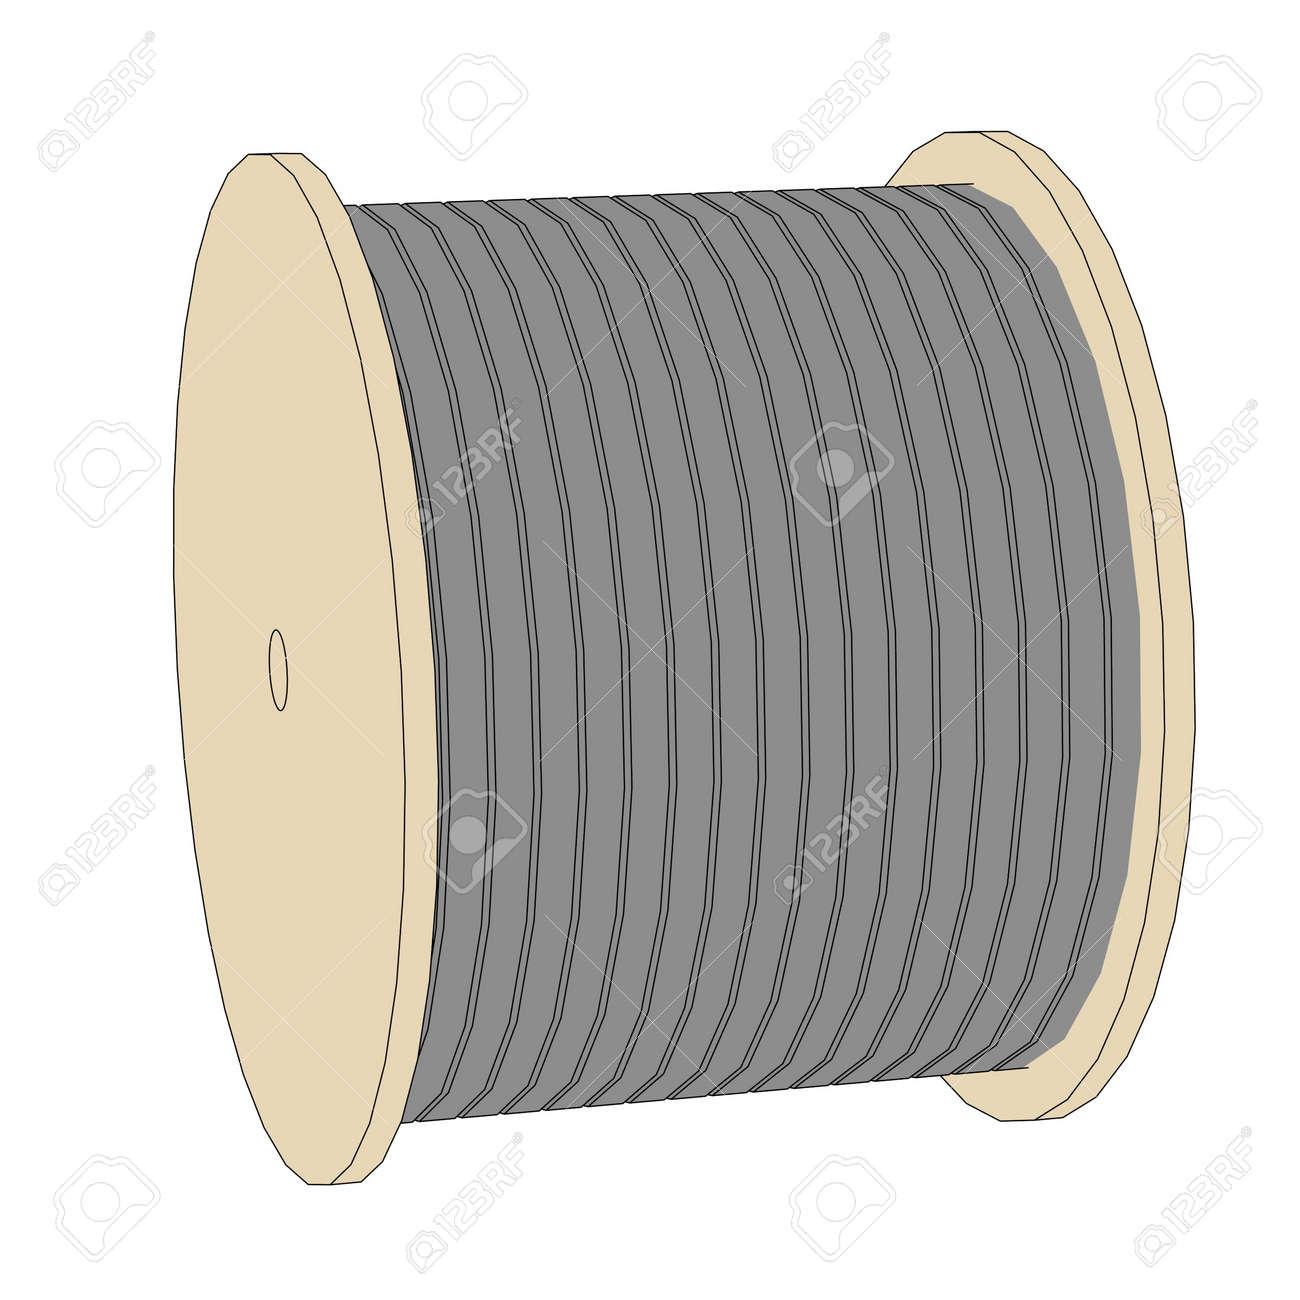 353 Wire Spool Stock Vector Illustration And Royalty Free Wire Spool ...